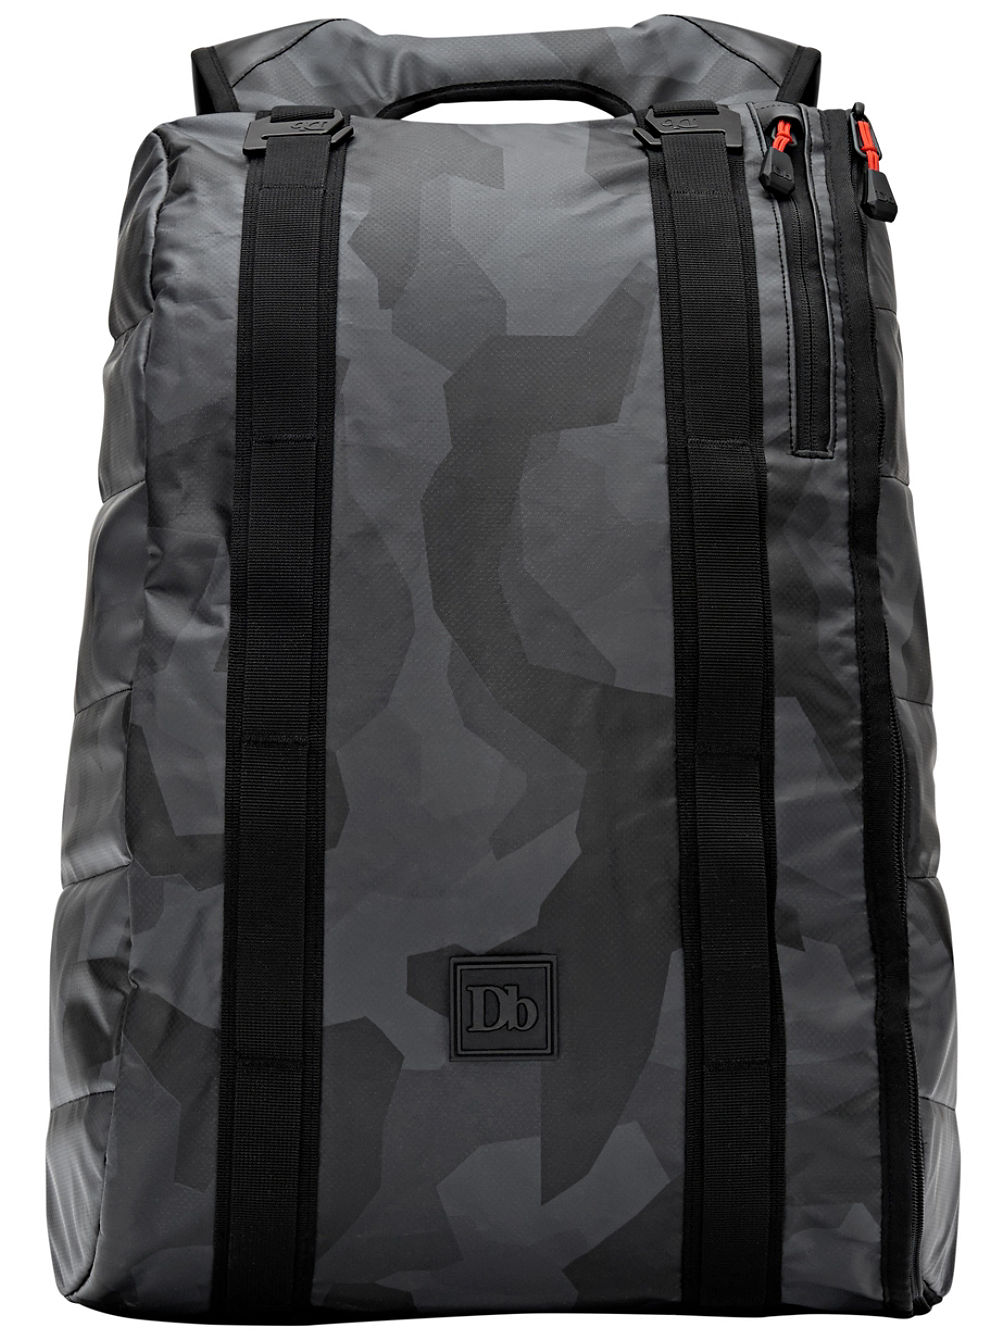 The Base 15L Black Camo Rucksack